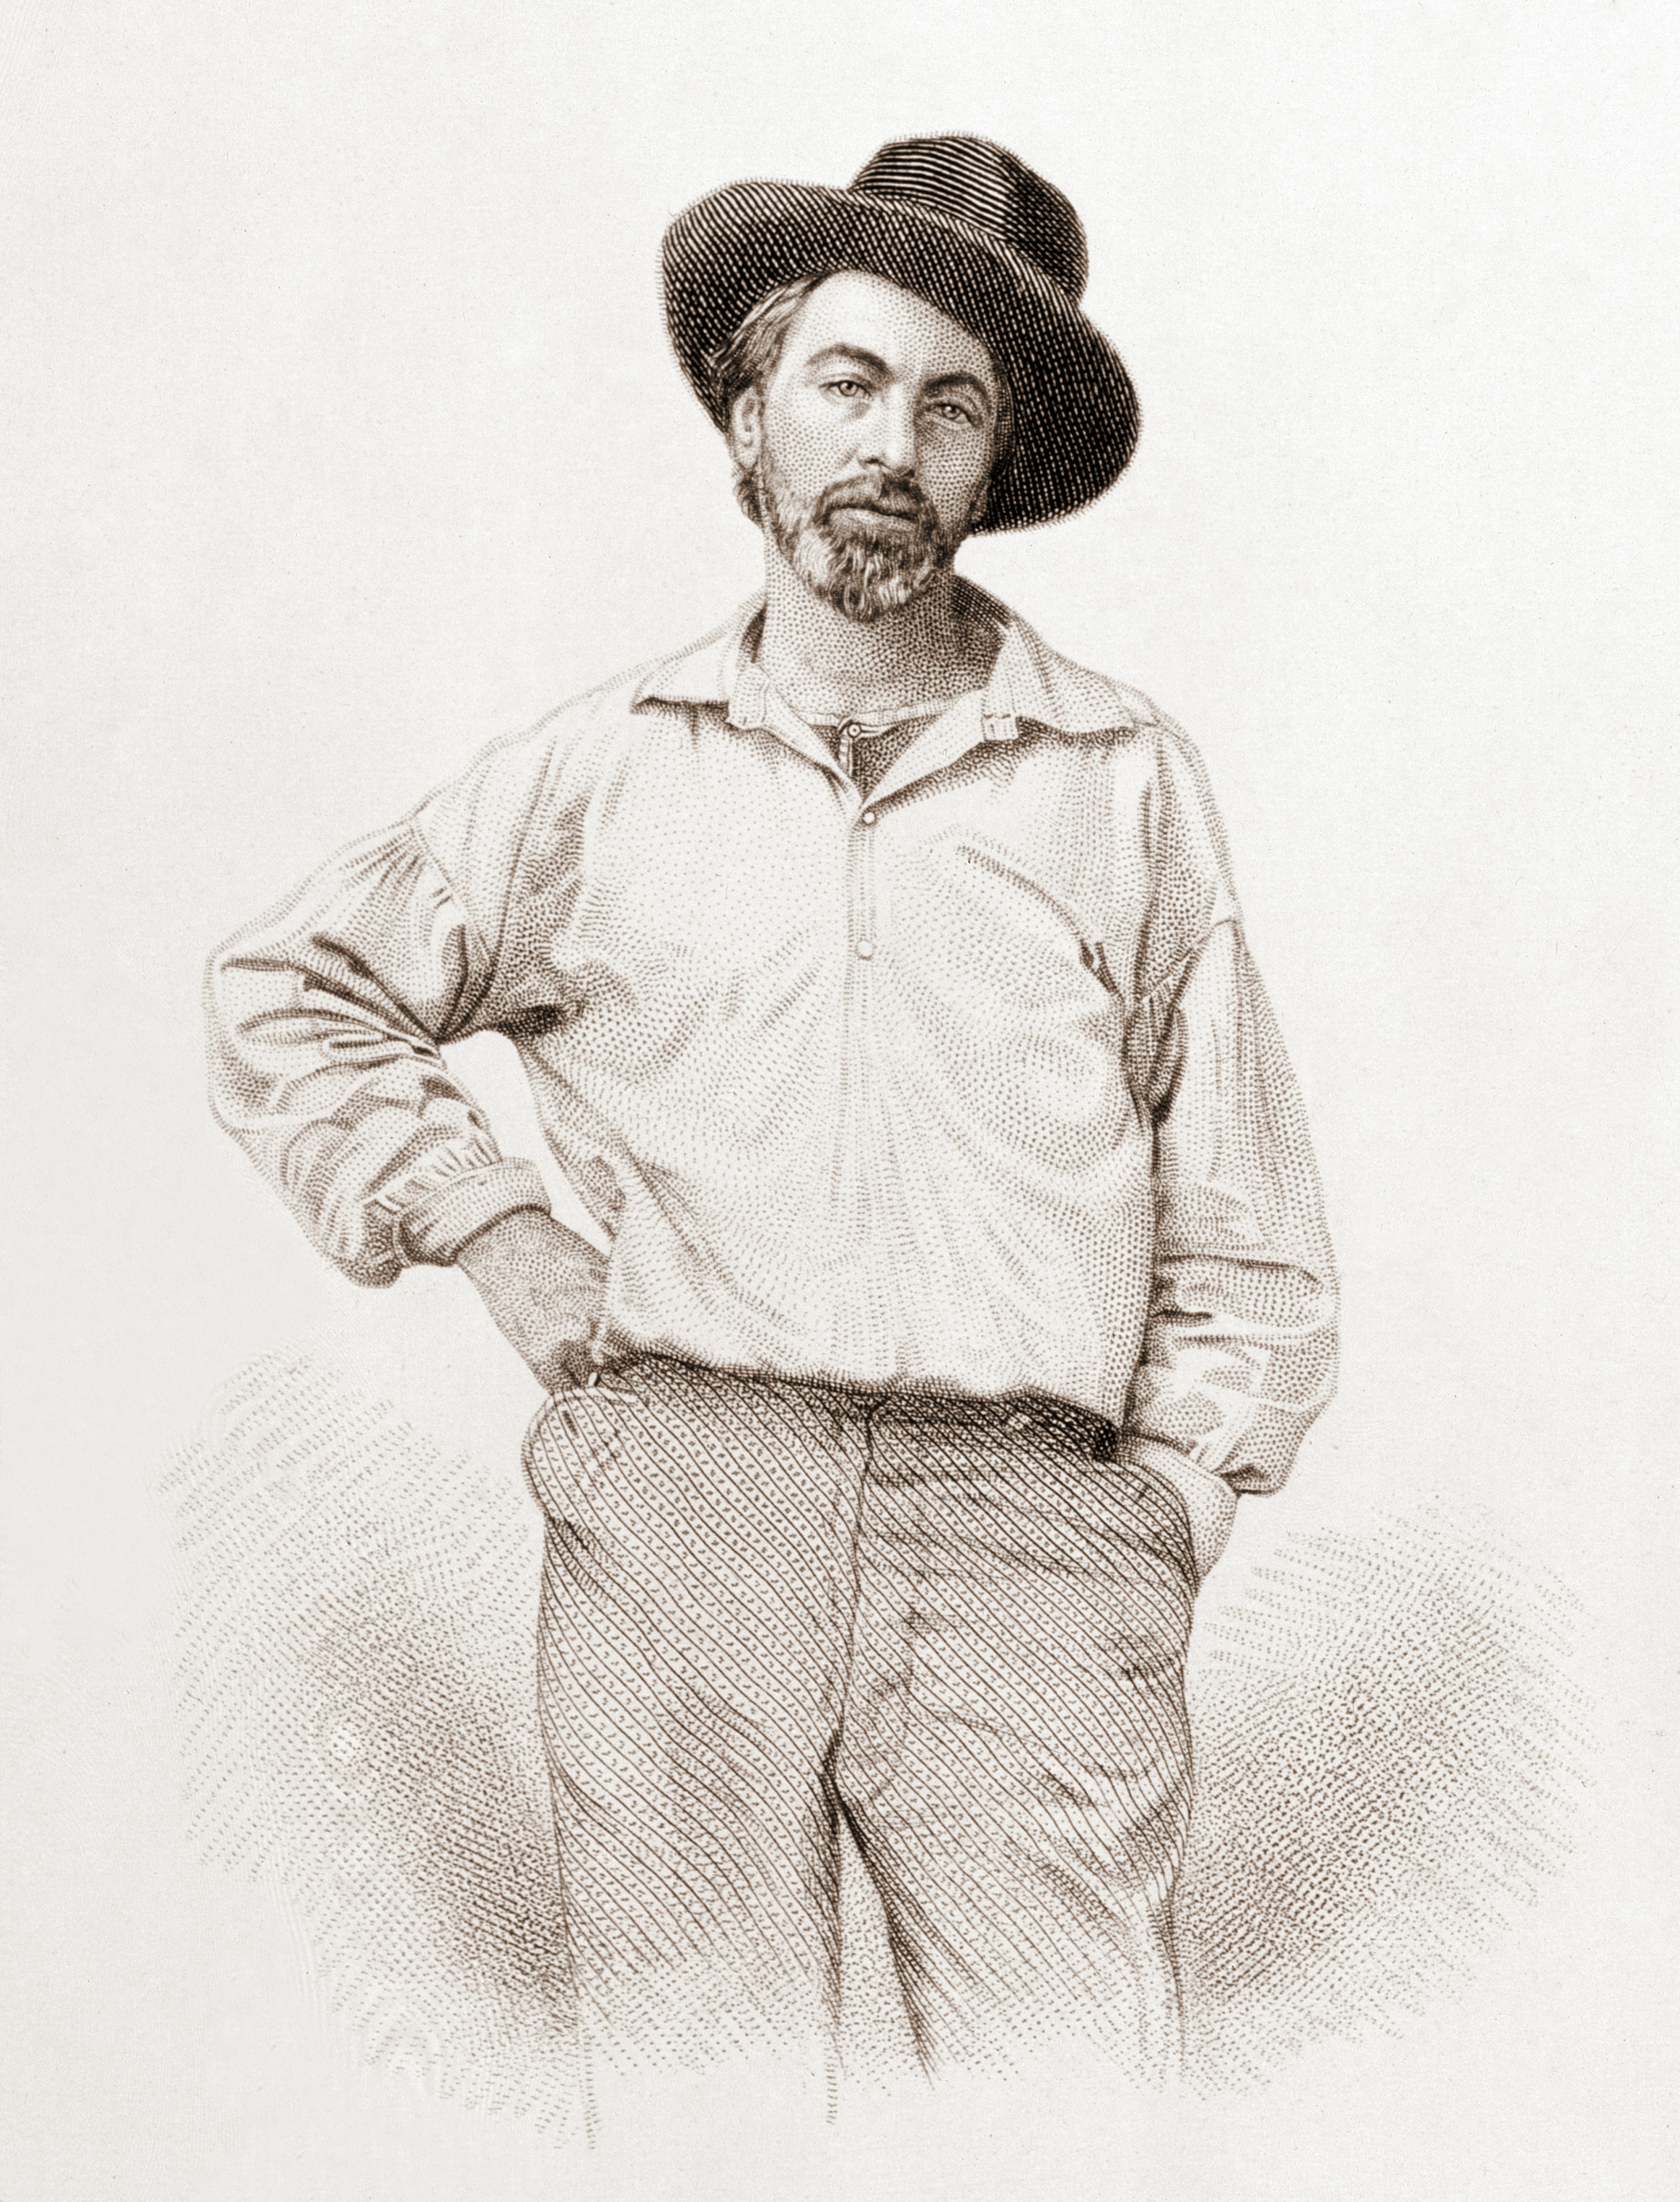 Image of Walt Whitman from 1855 Edition of Leaves of Grass